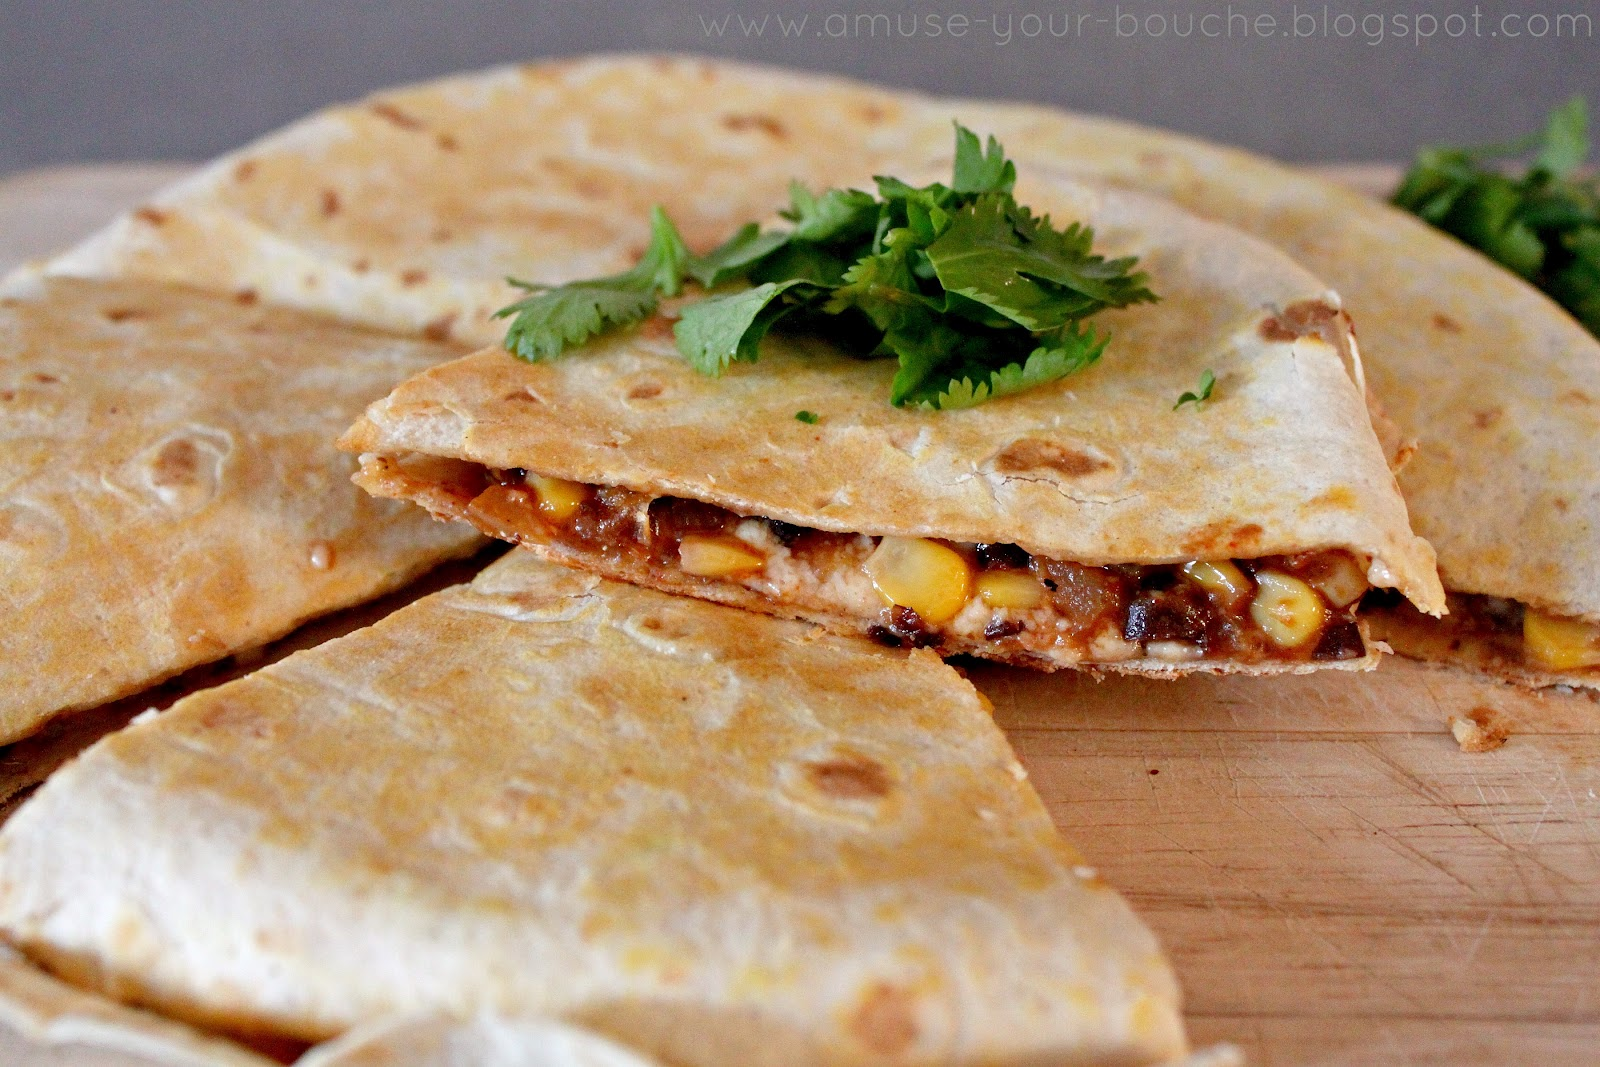 Spicy black bean and corn quesadillas - Amuse Your Bouche